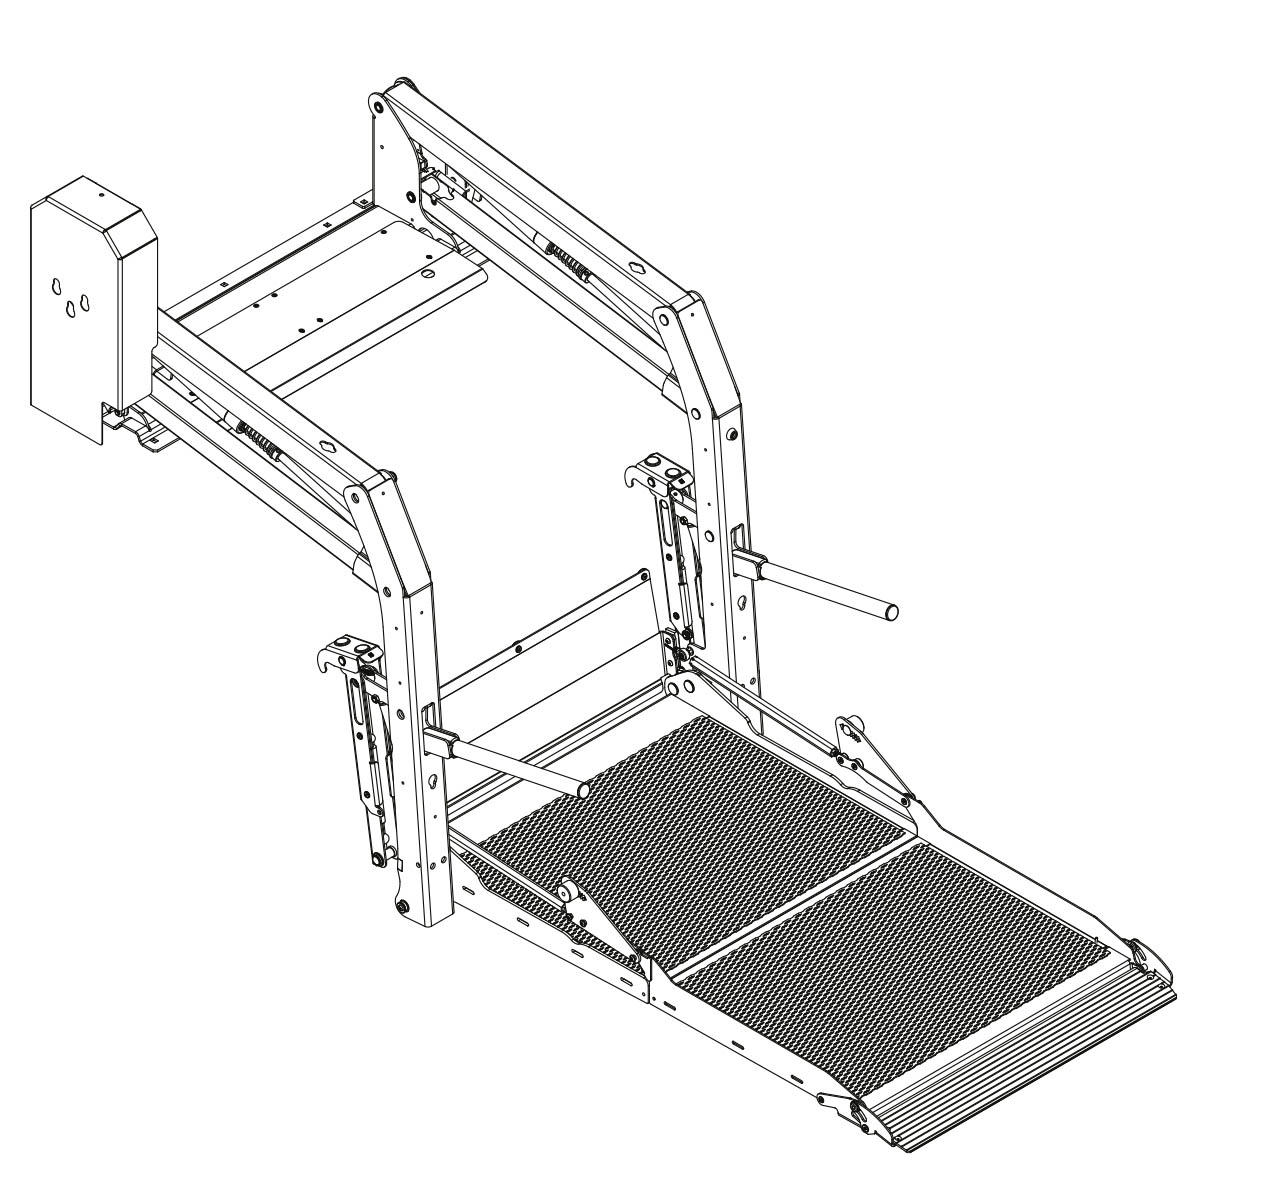 Illustration of an E-1320 folding